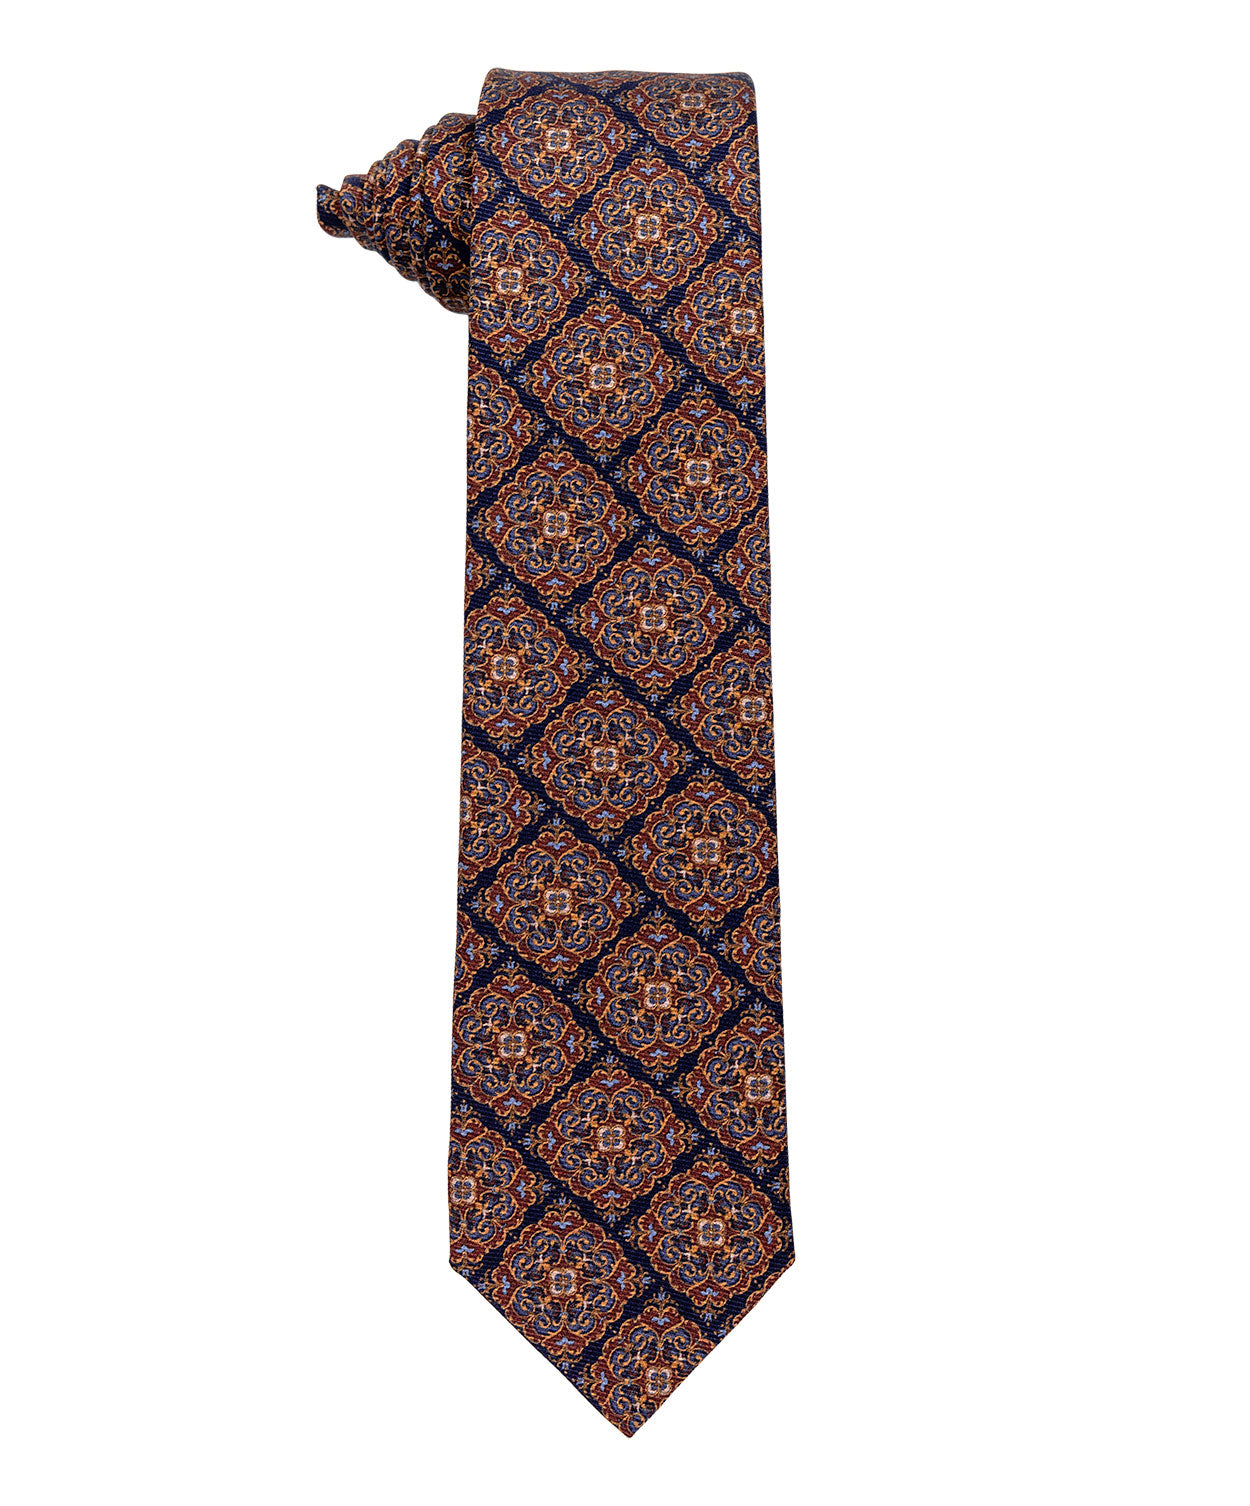 3830-1 Navy/Brown Medallion Tie 8cm